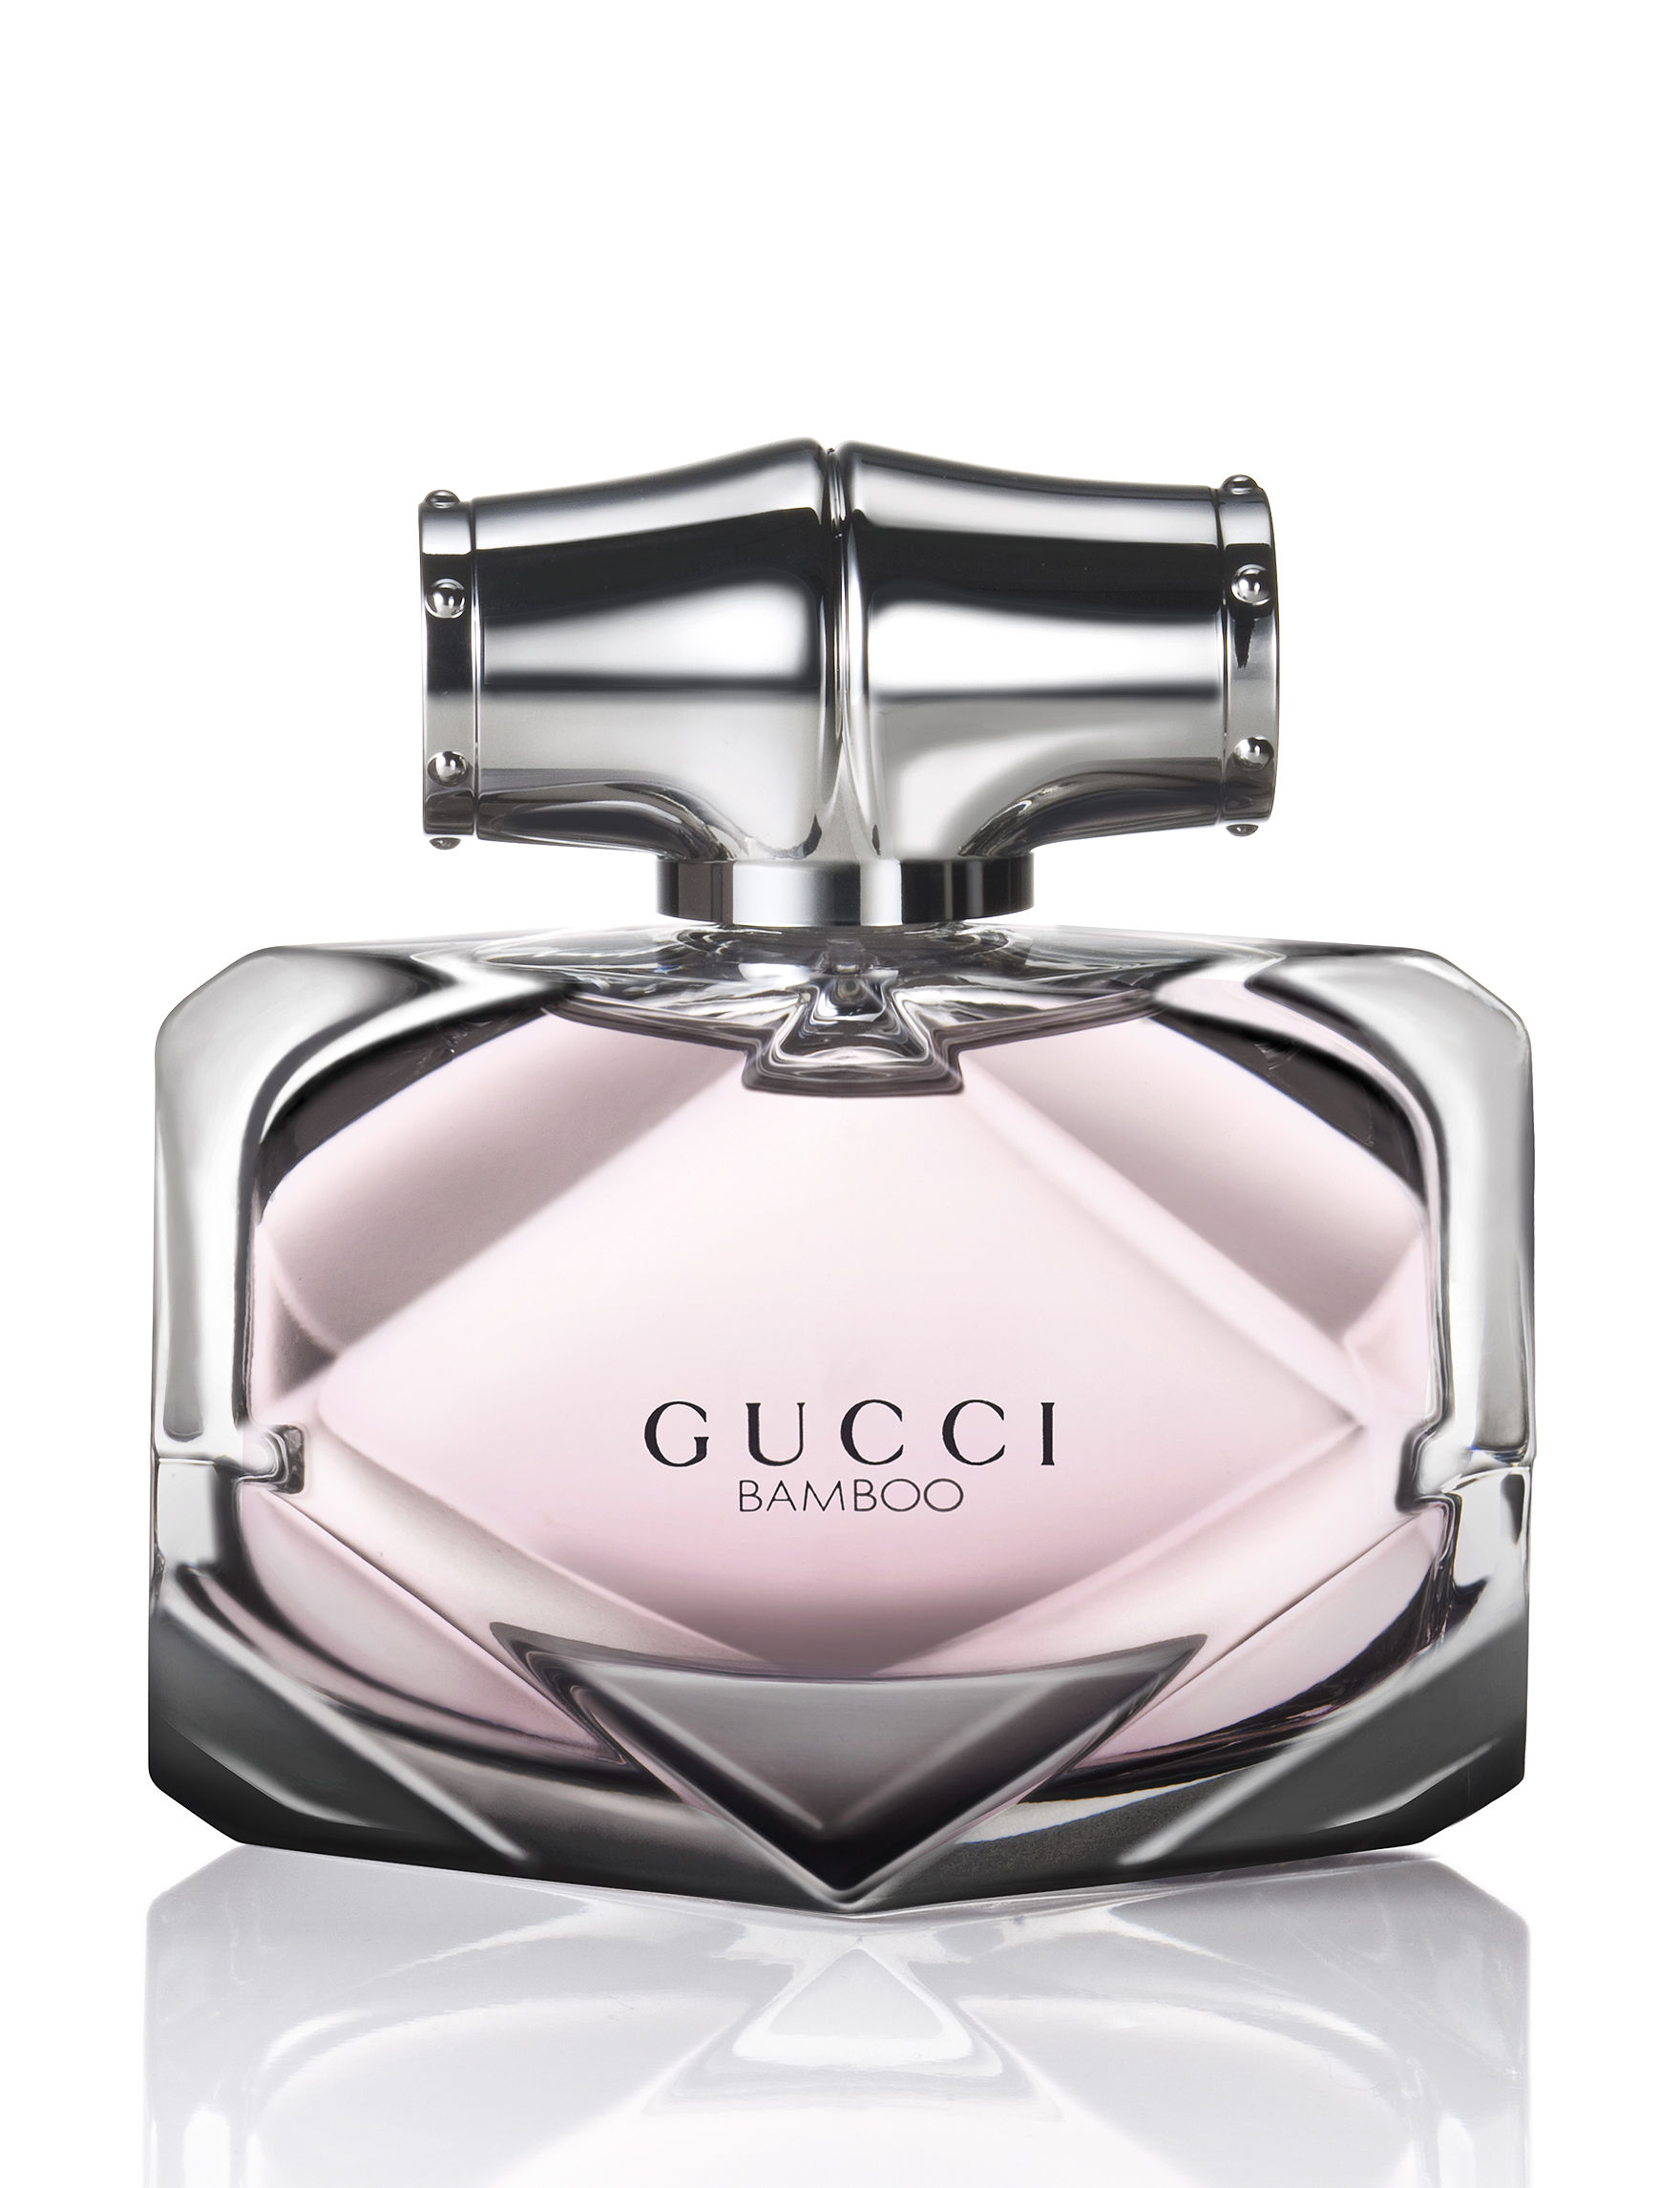 Gucci Bamboo Eau De Parfum For Her Stage Stores - Free cleaning invoice template gucci outlet store online